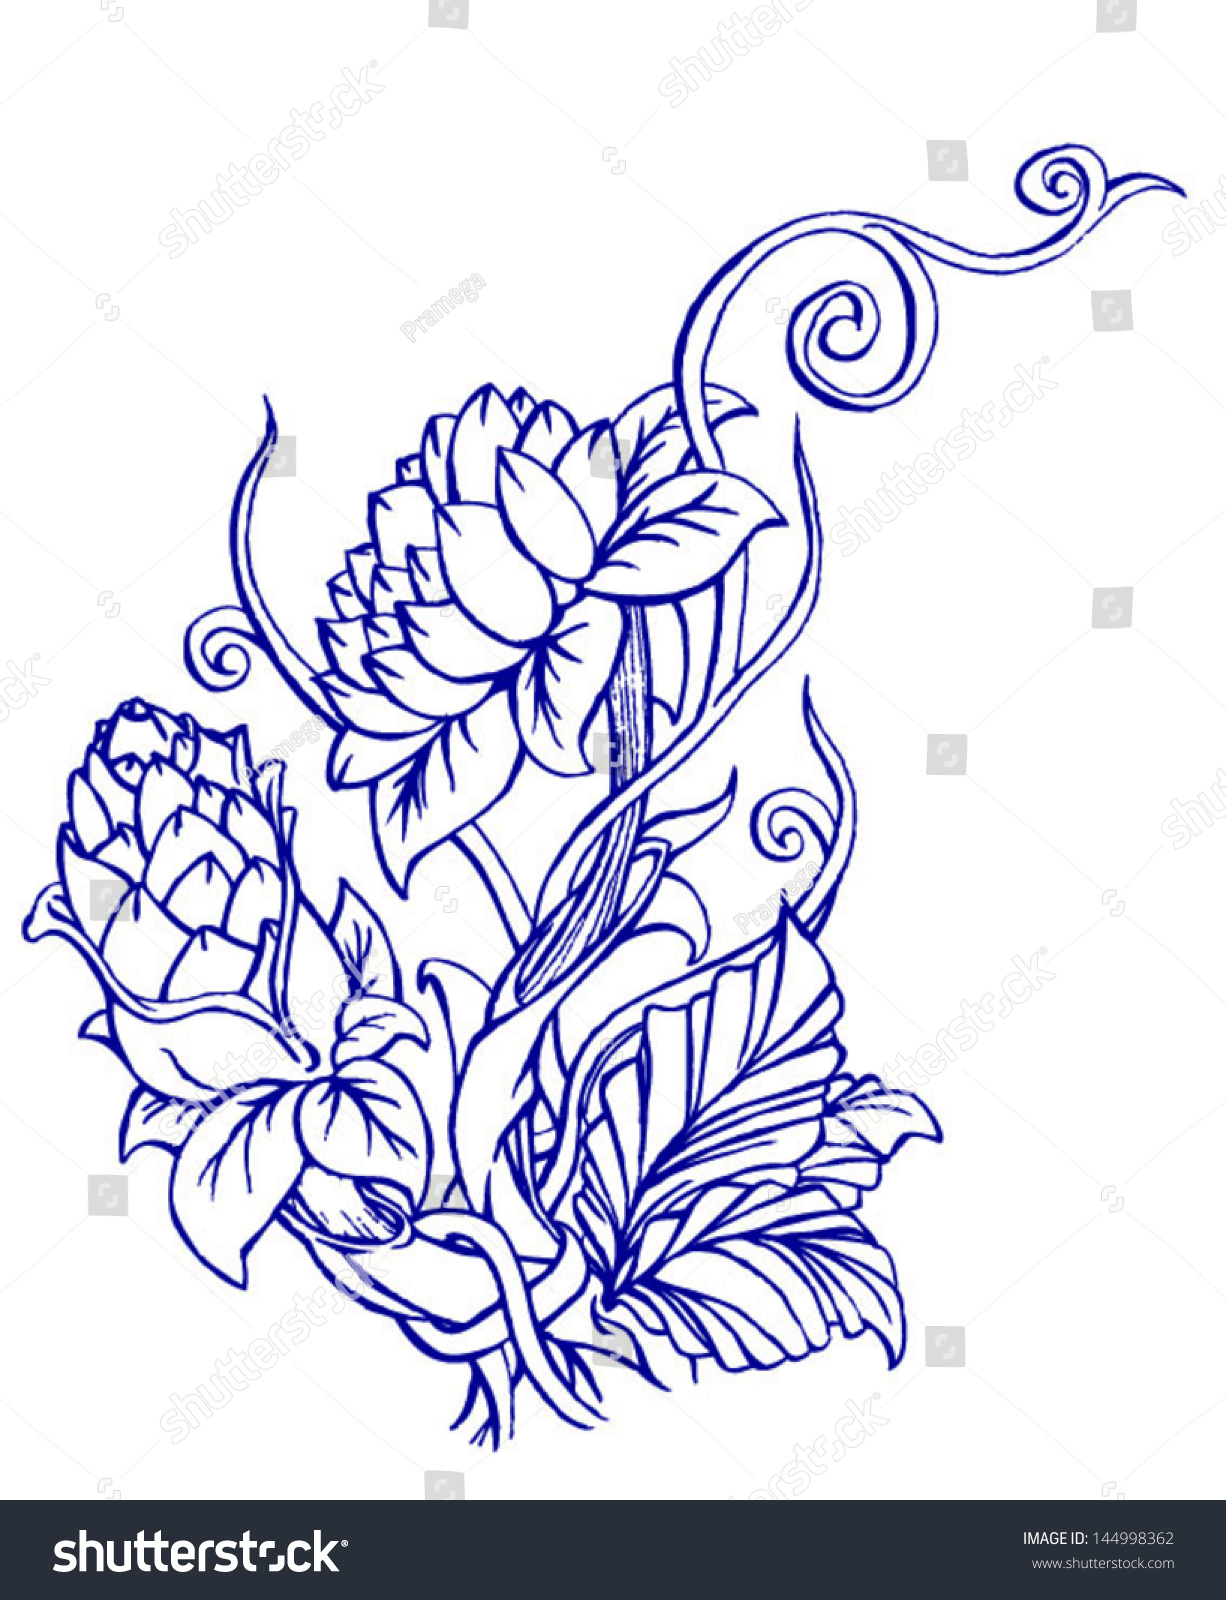 Bouquet Simple Roses Drawing Stock Vector 144998362 - Shutterstock